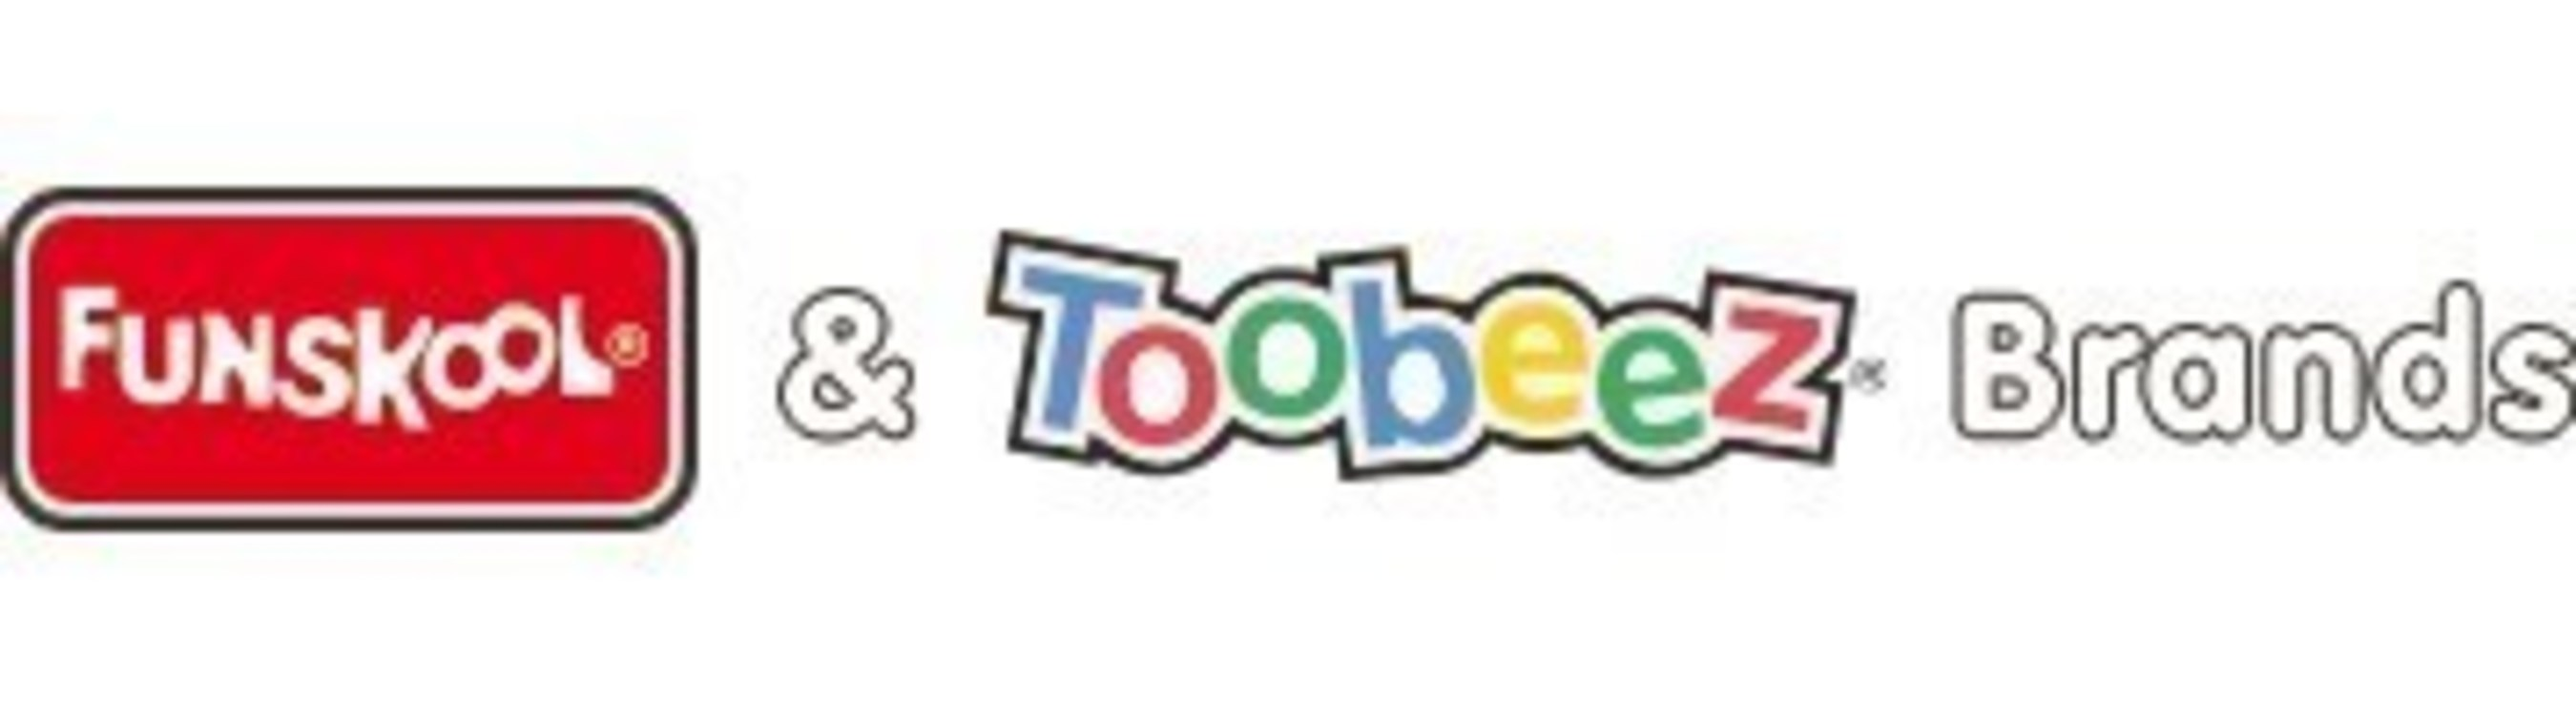 TOOBEEZ Unveils New Product Lines at NY Toy Fair with Funskool® Distribution Deal